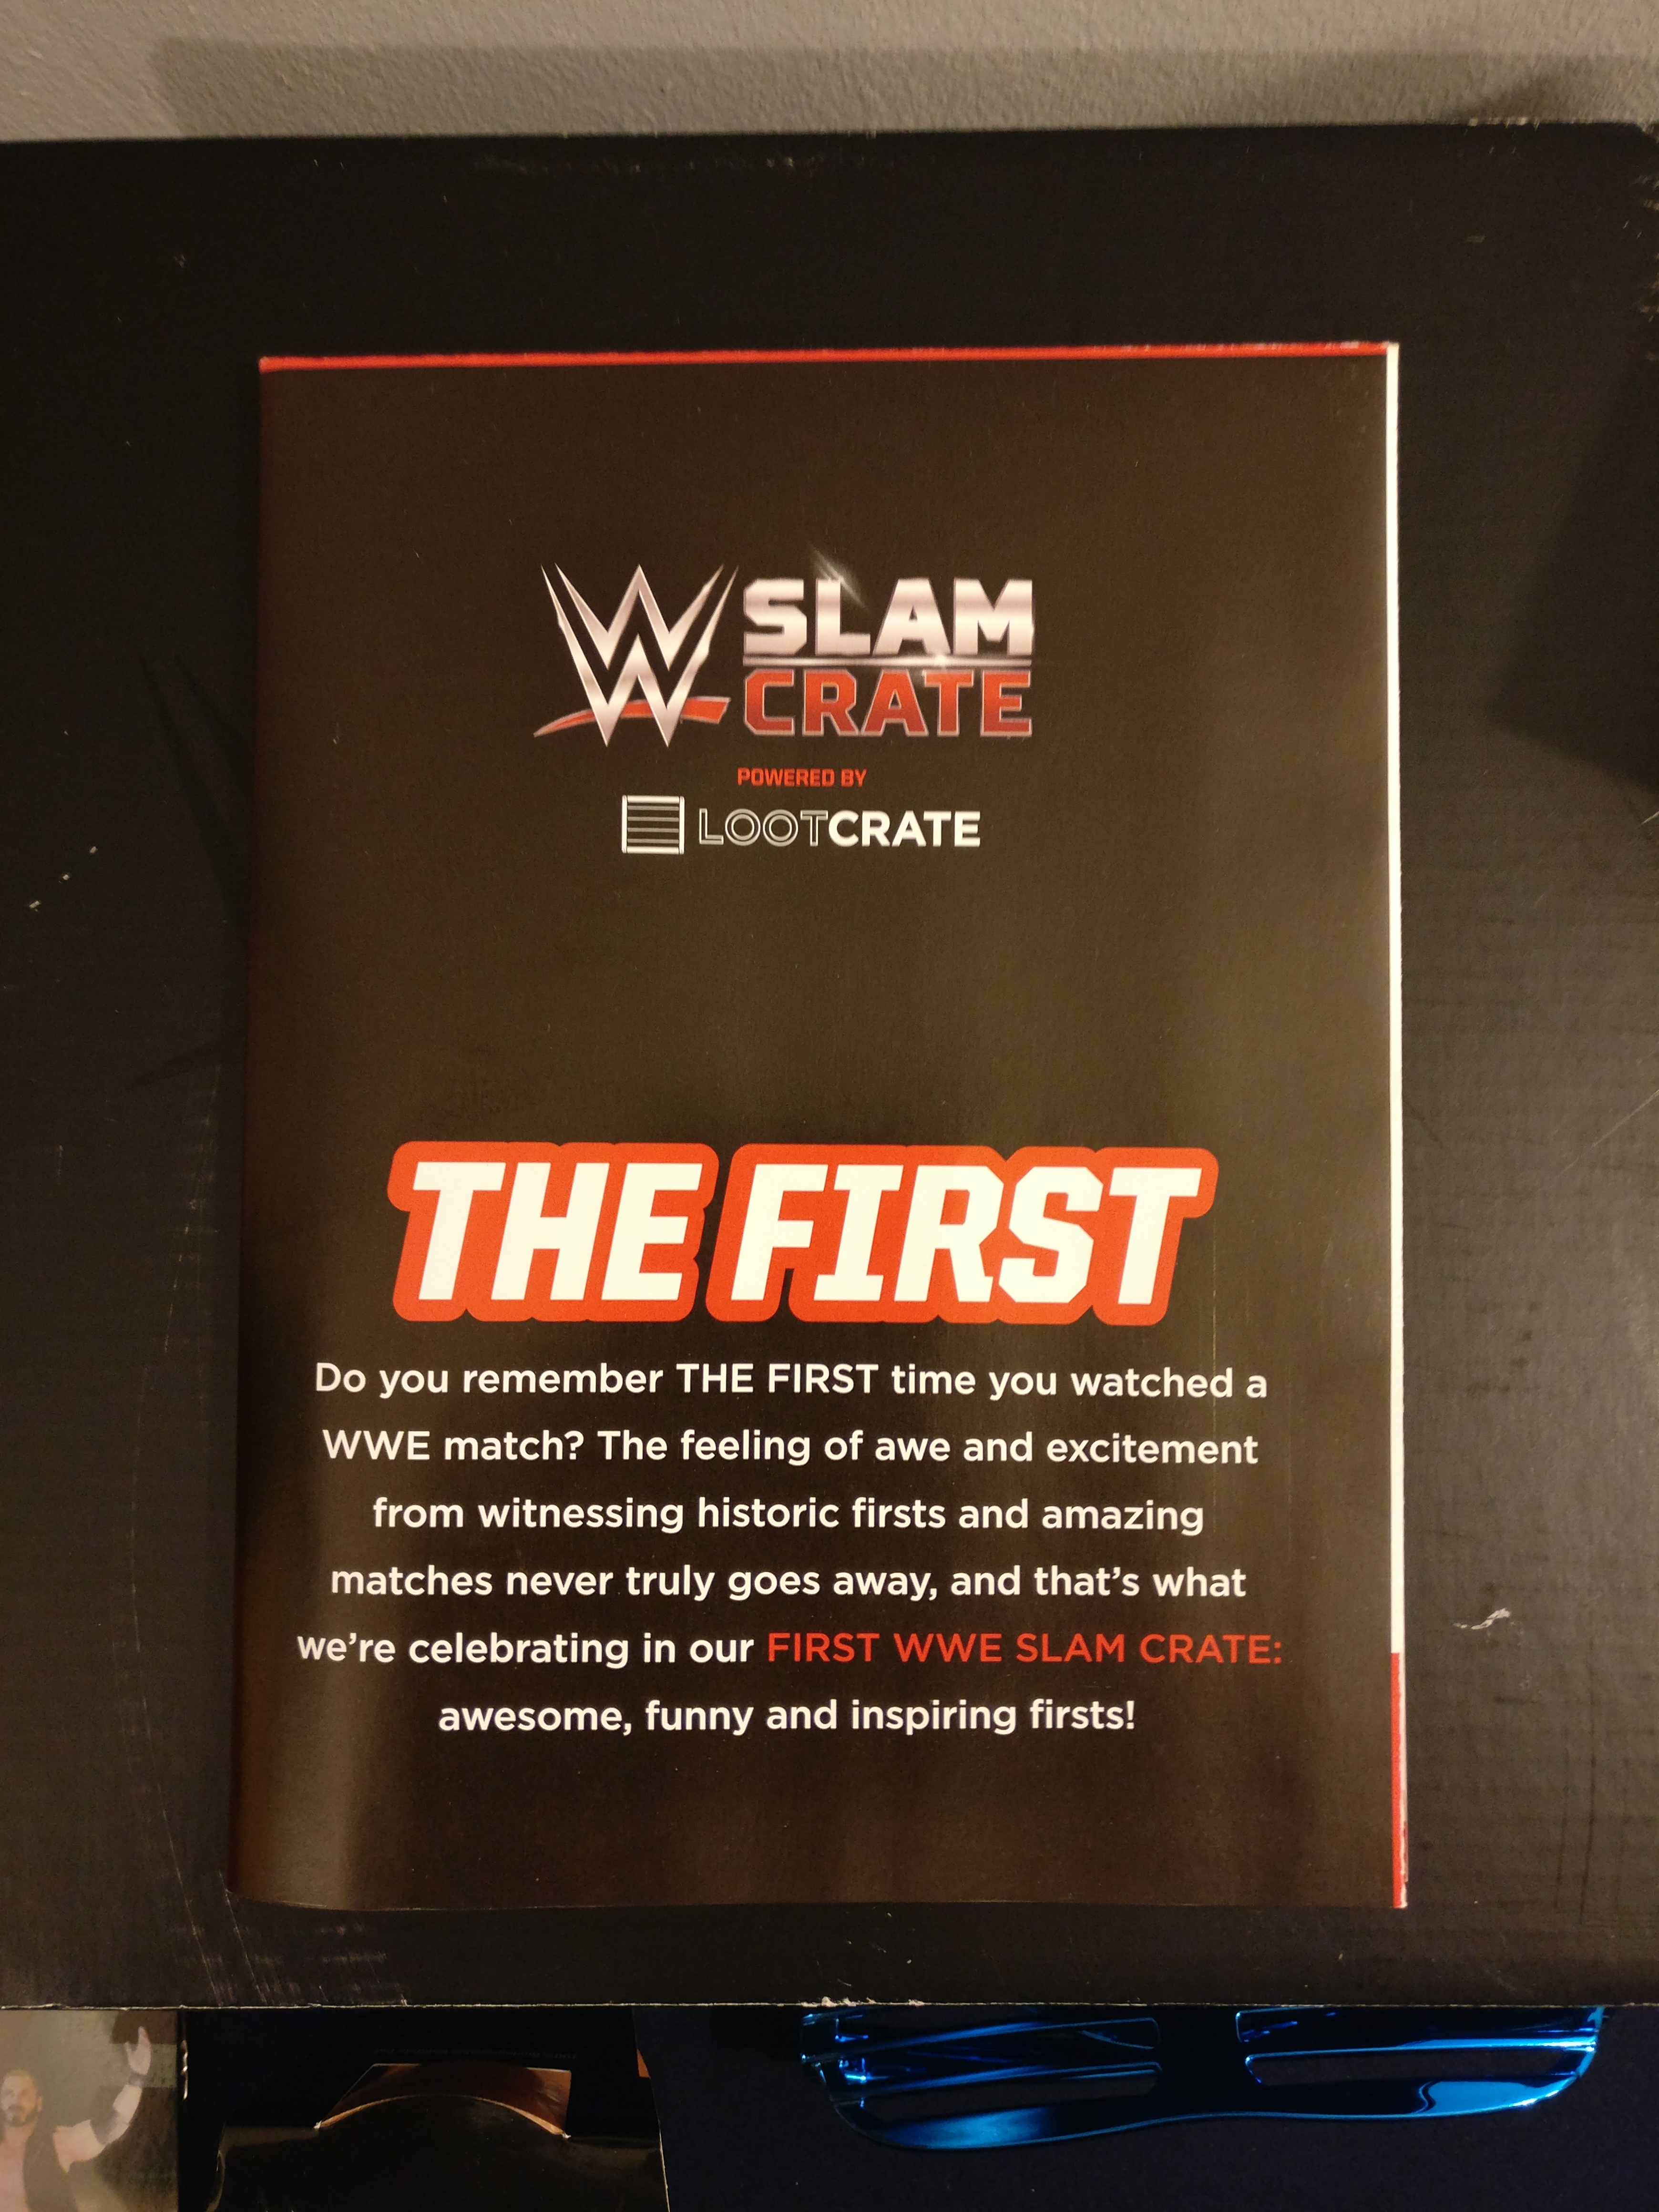 WWE Slam Crate LootCrate The First Enzo /& Big Cass New Day Championship Pin